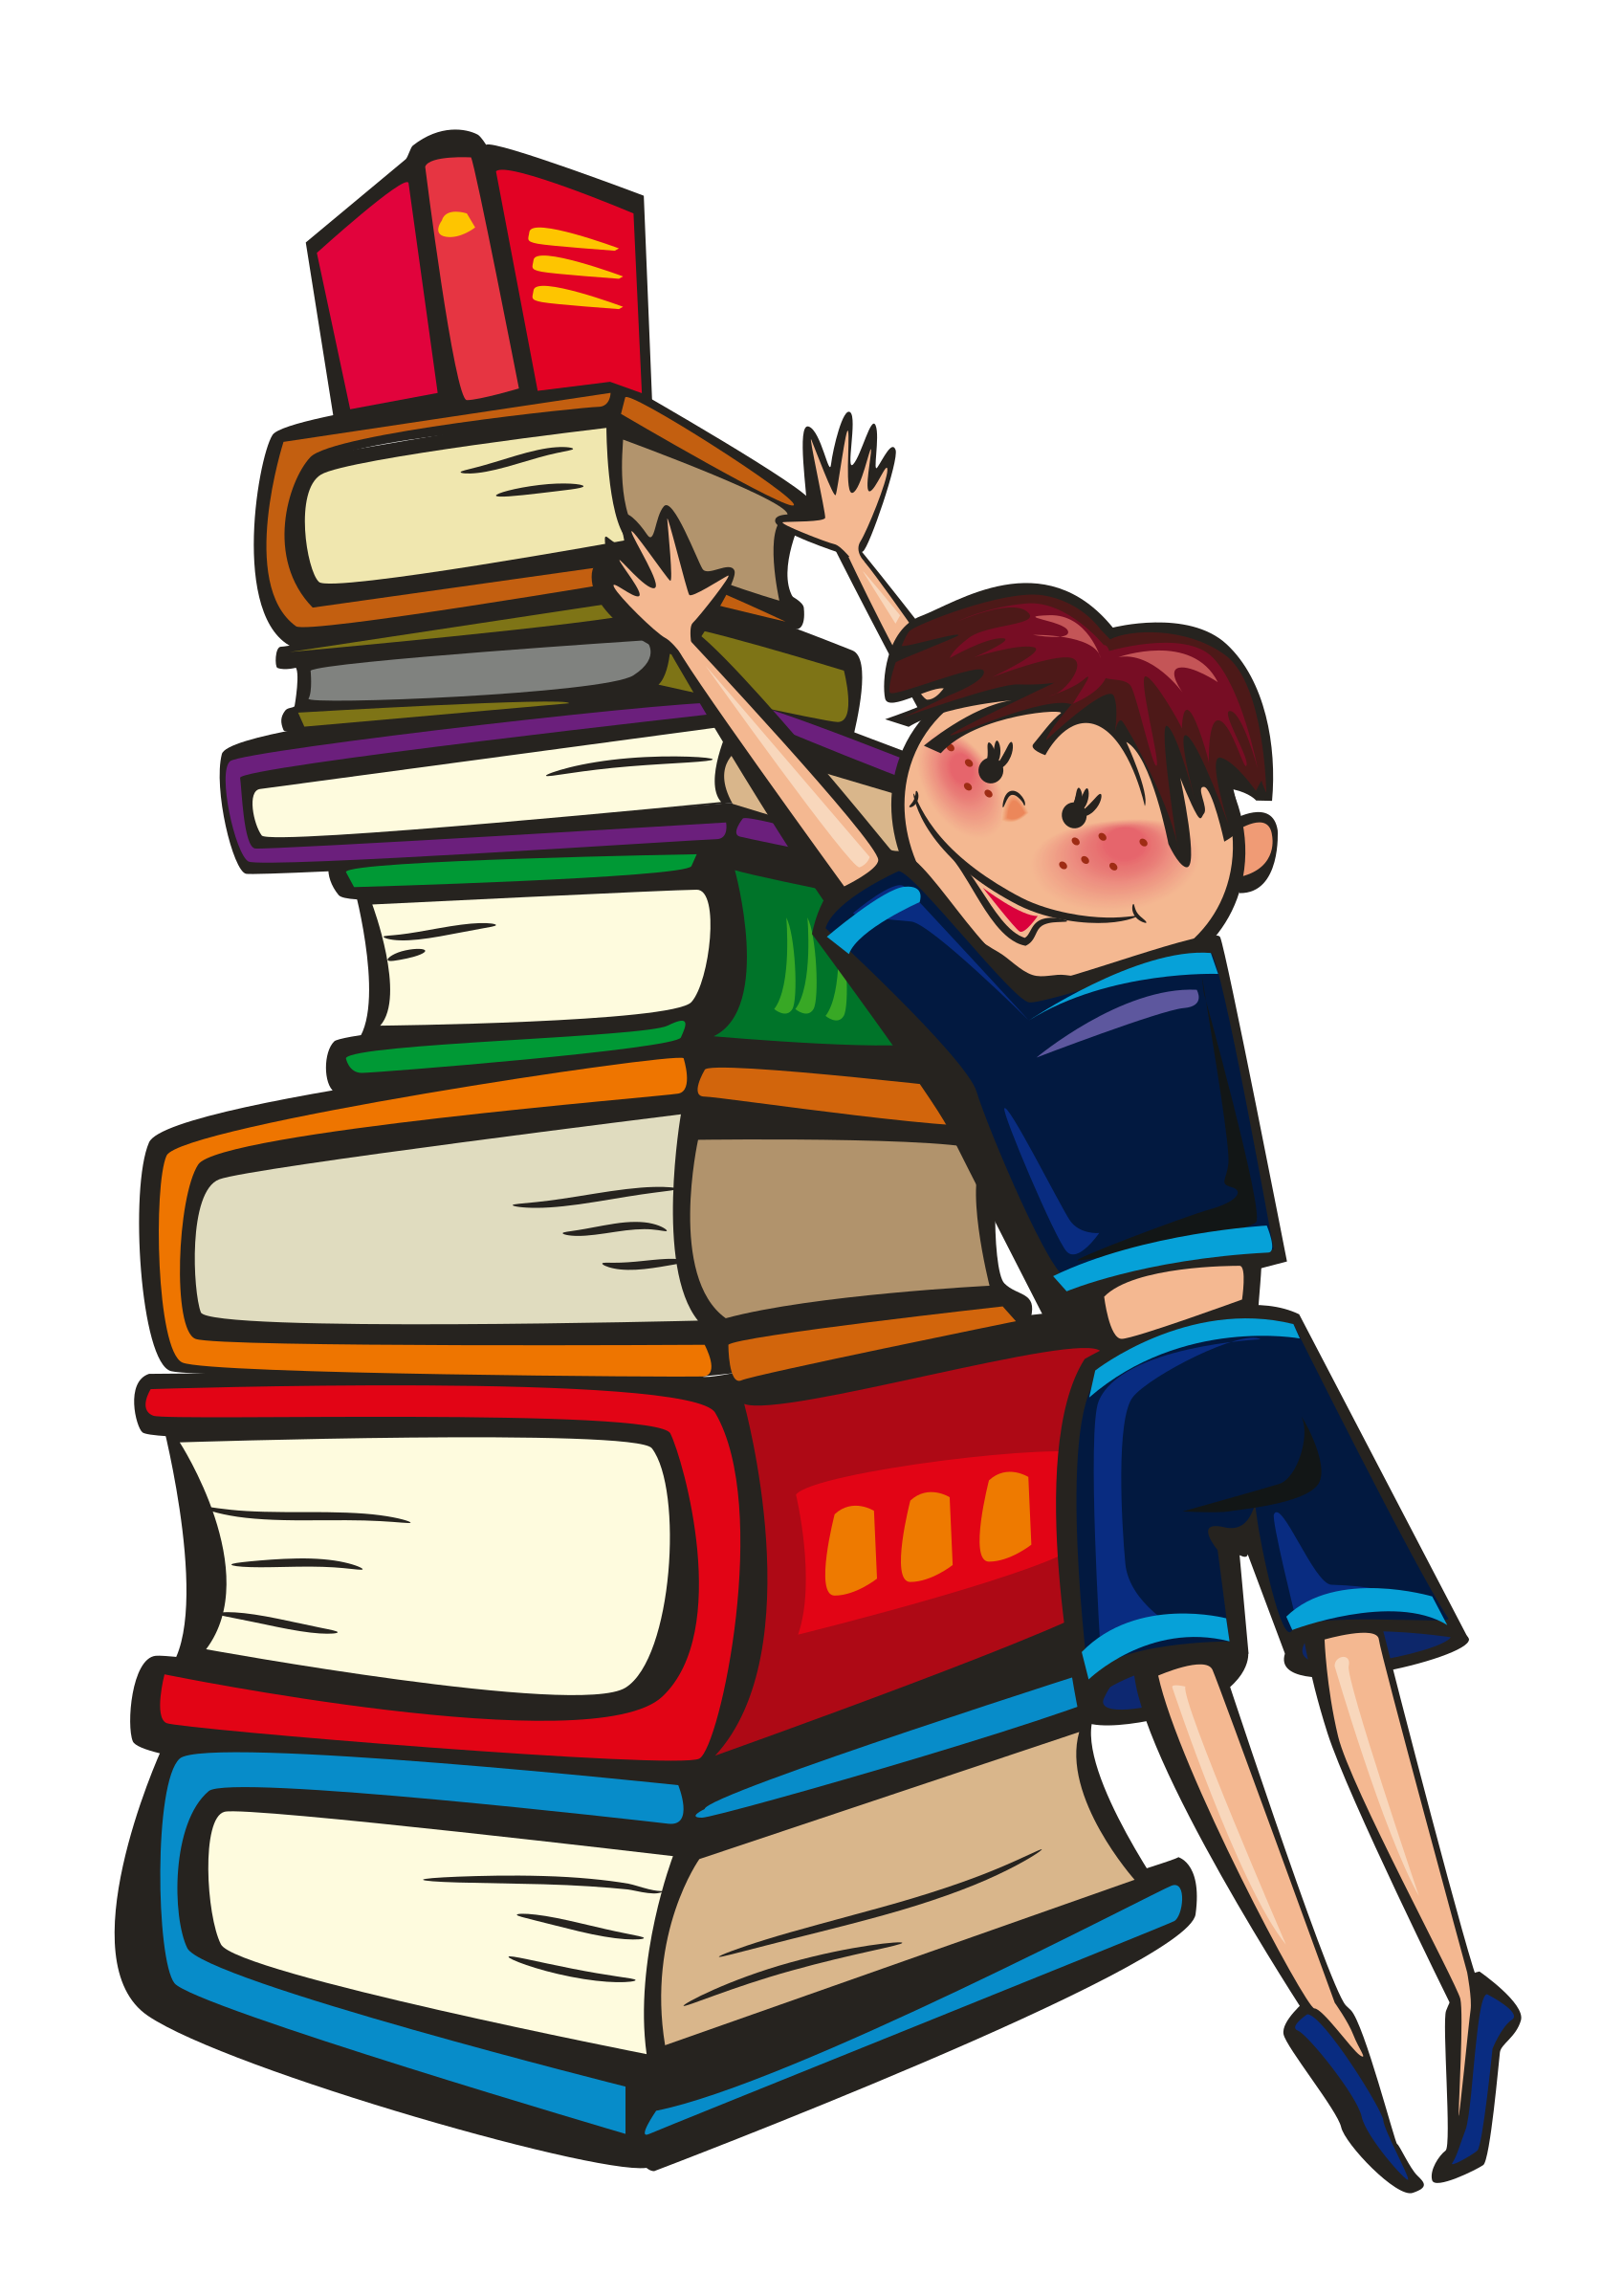 School days by sammo. Homework clipart stack